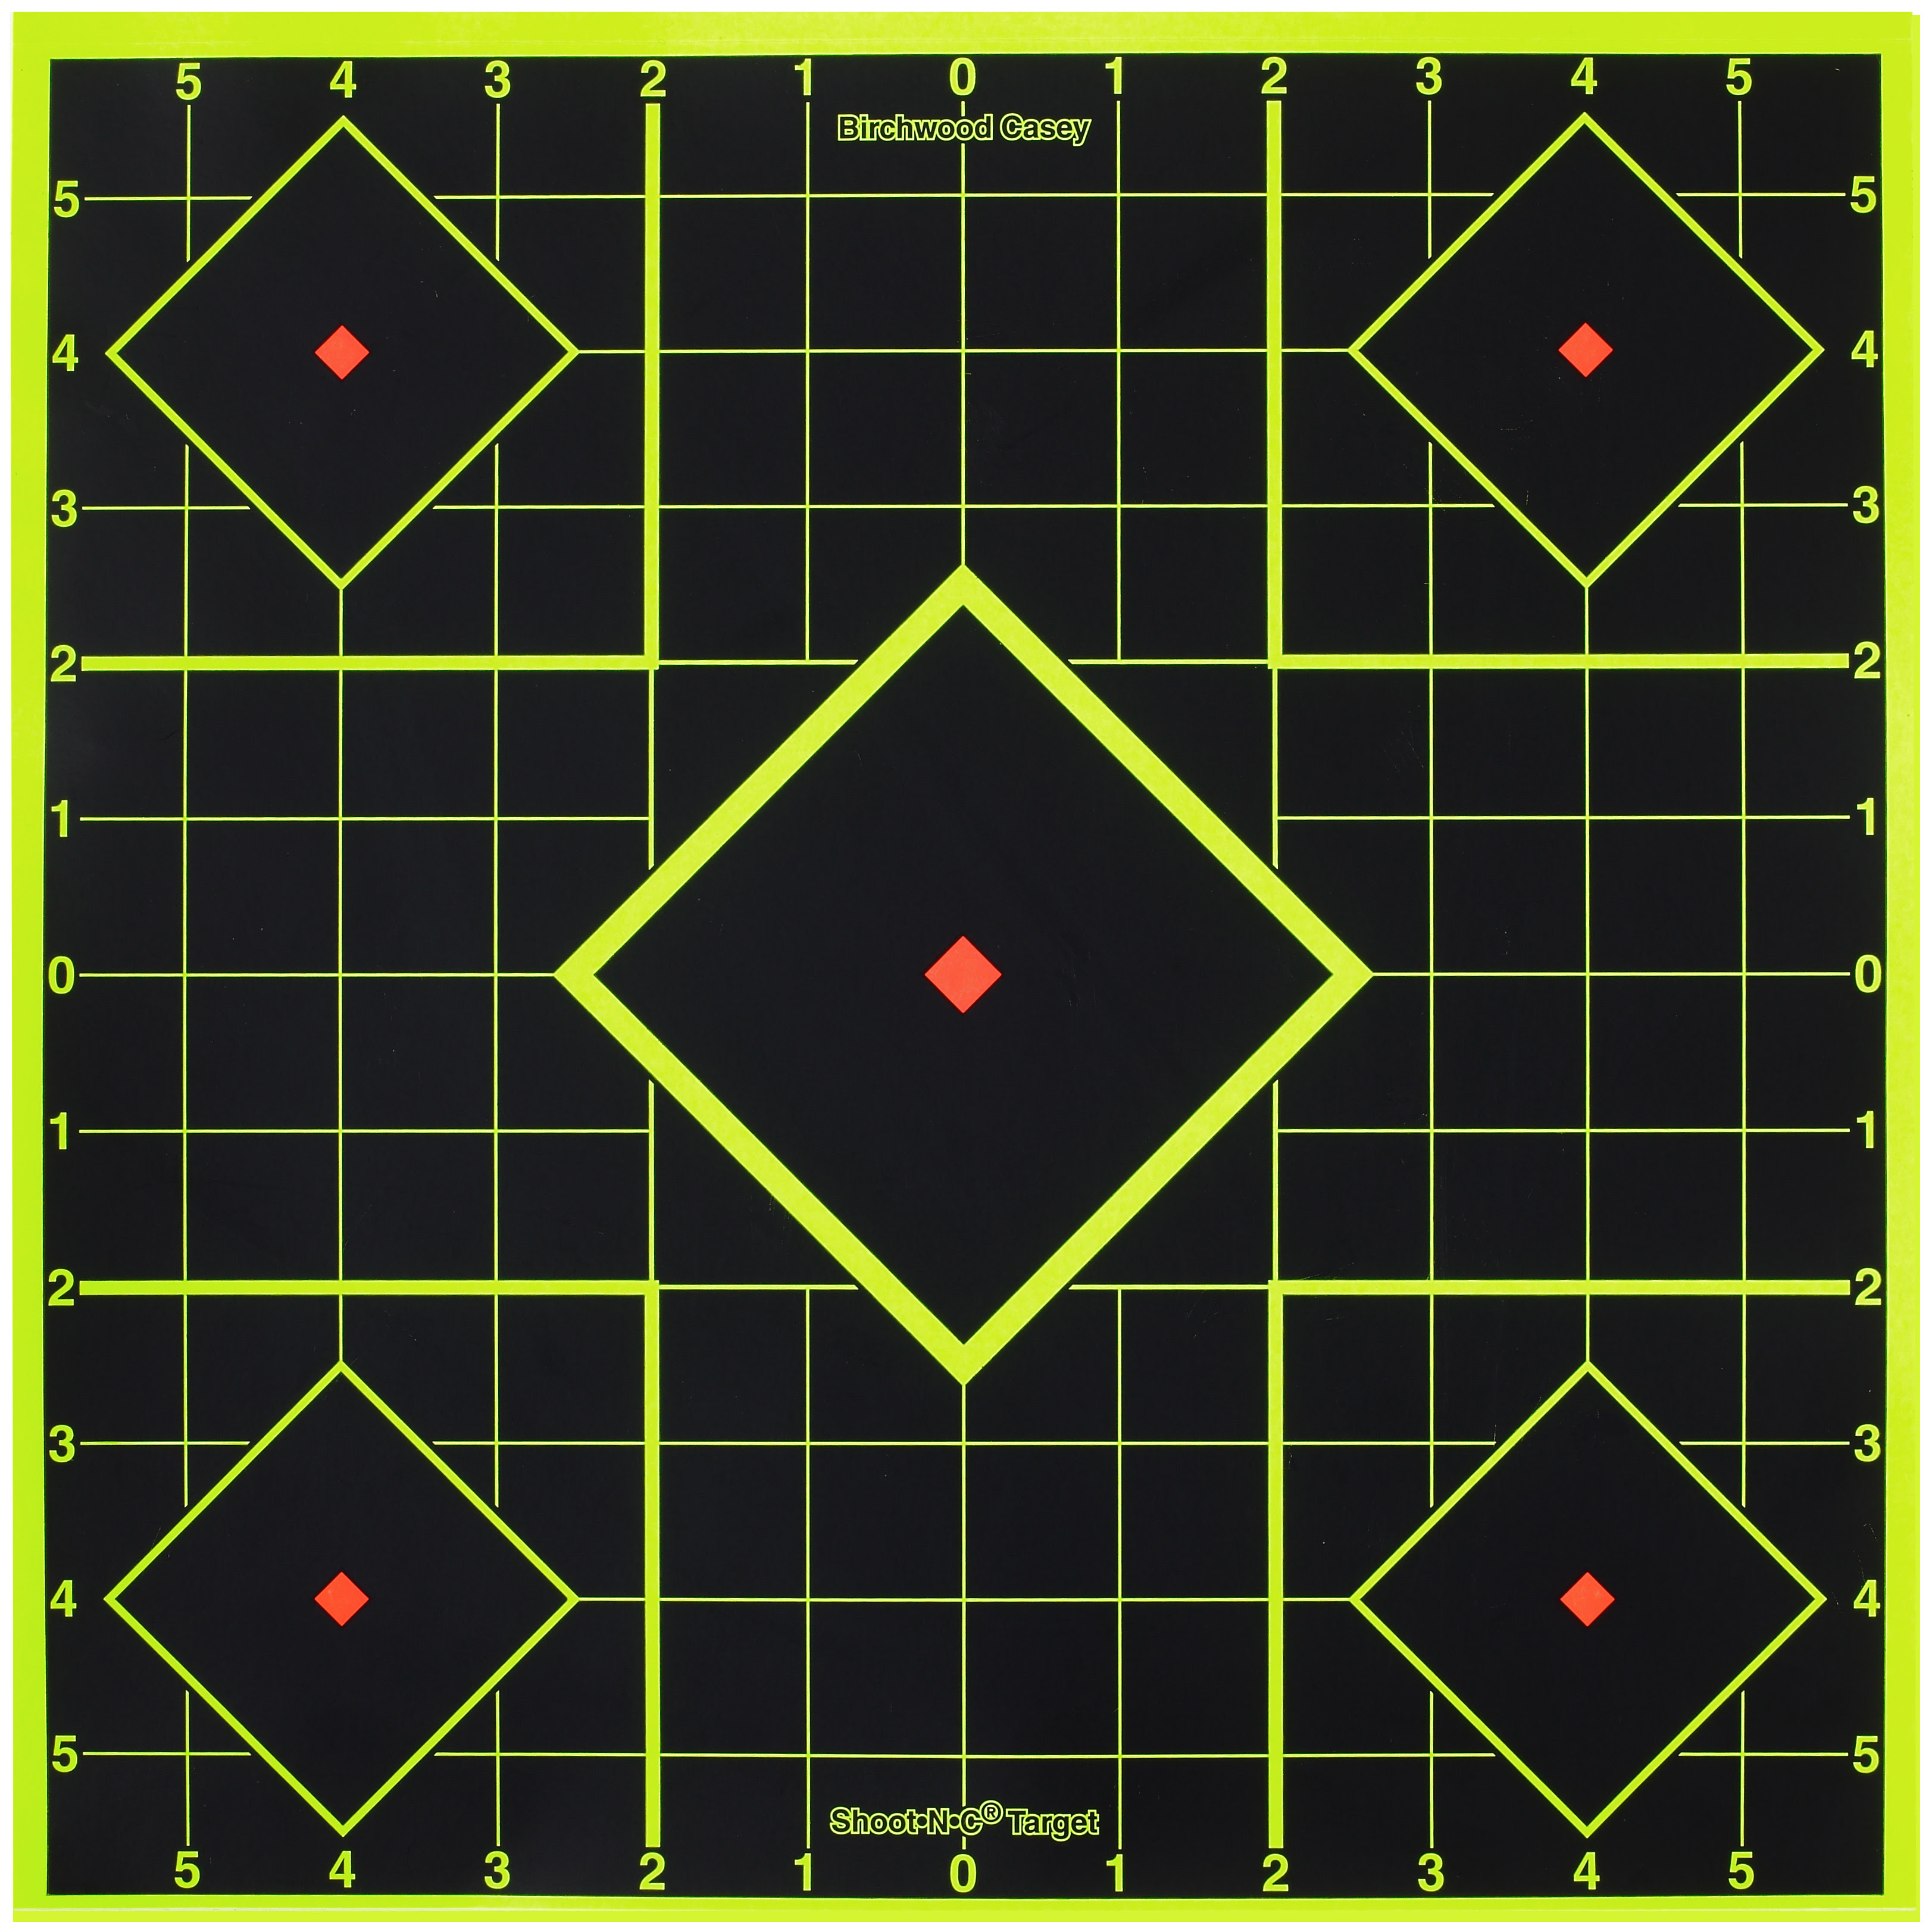 Best Target For Zeroing Red Dot [Archive] - M4Carbine.net Forums